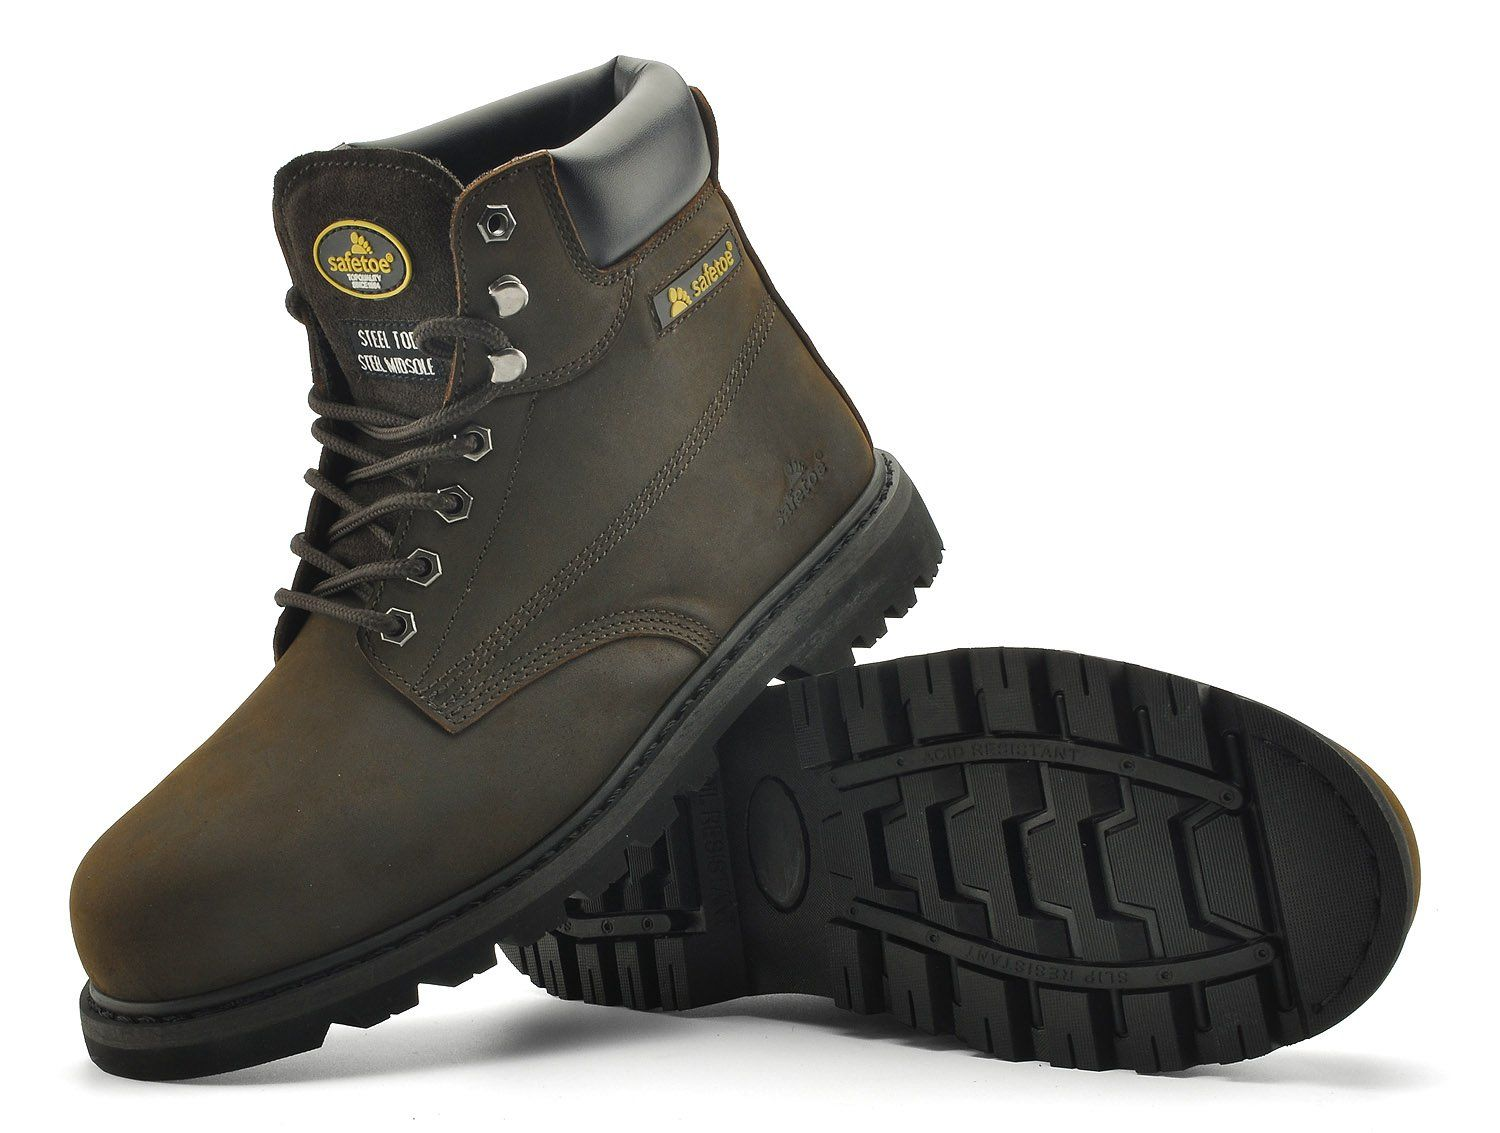 21d6b47c85f Safetoe Mens Safety Boots Steel Toe Leather WaterResistant Work Boot ...